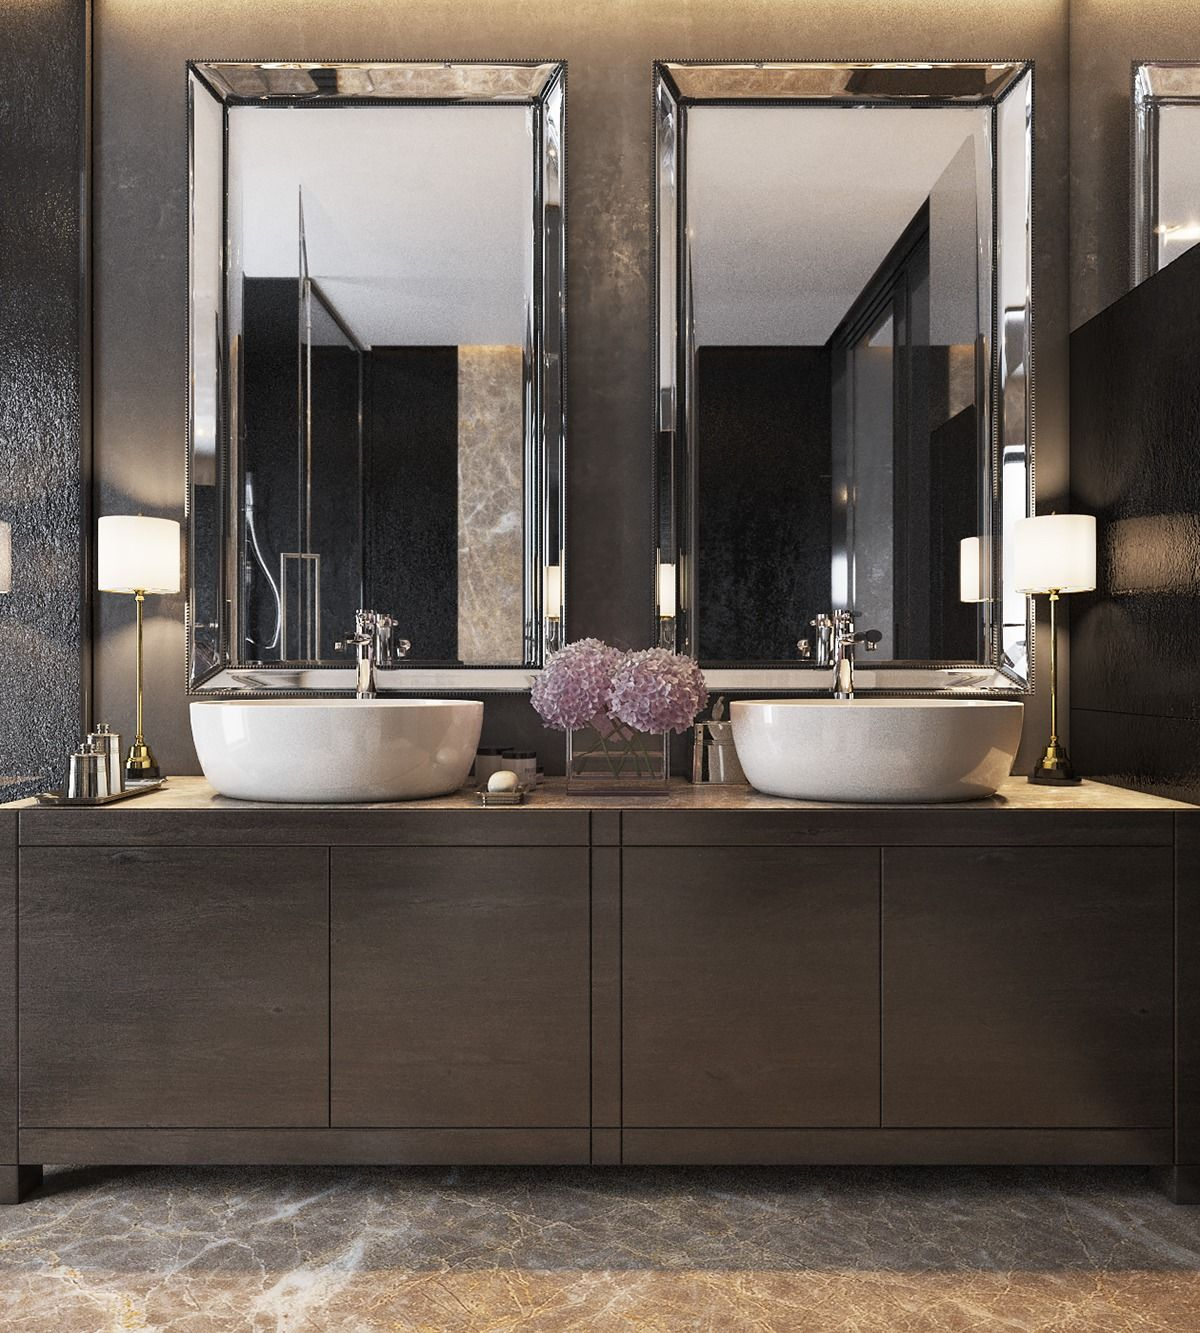 Bathroom Designs Vessel Sinks three luxurious apartments with dark modern interiors | vessel